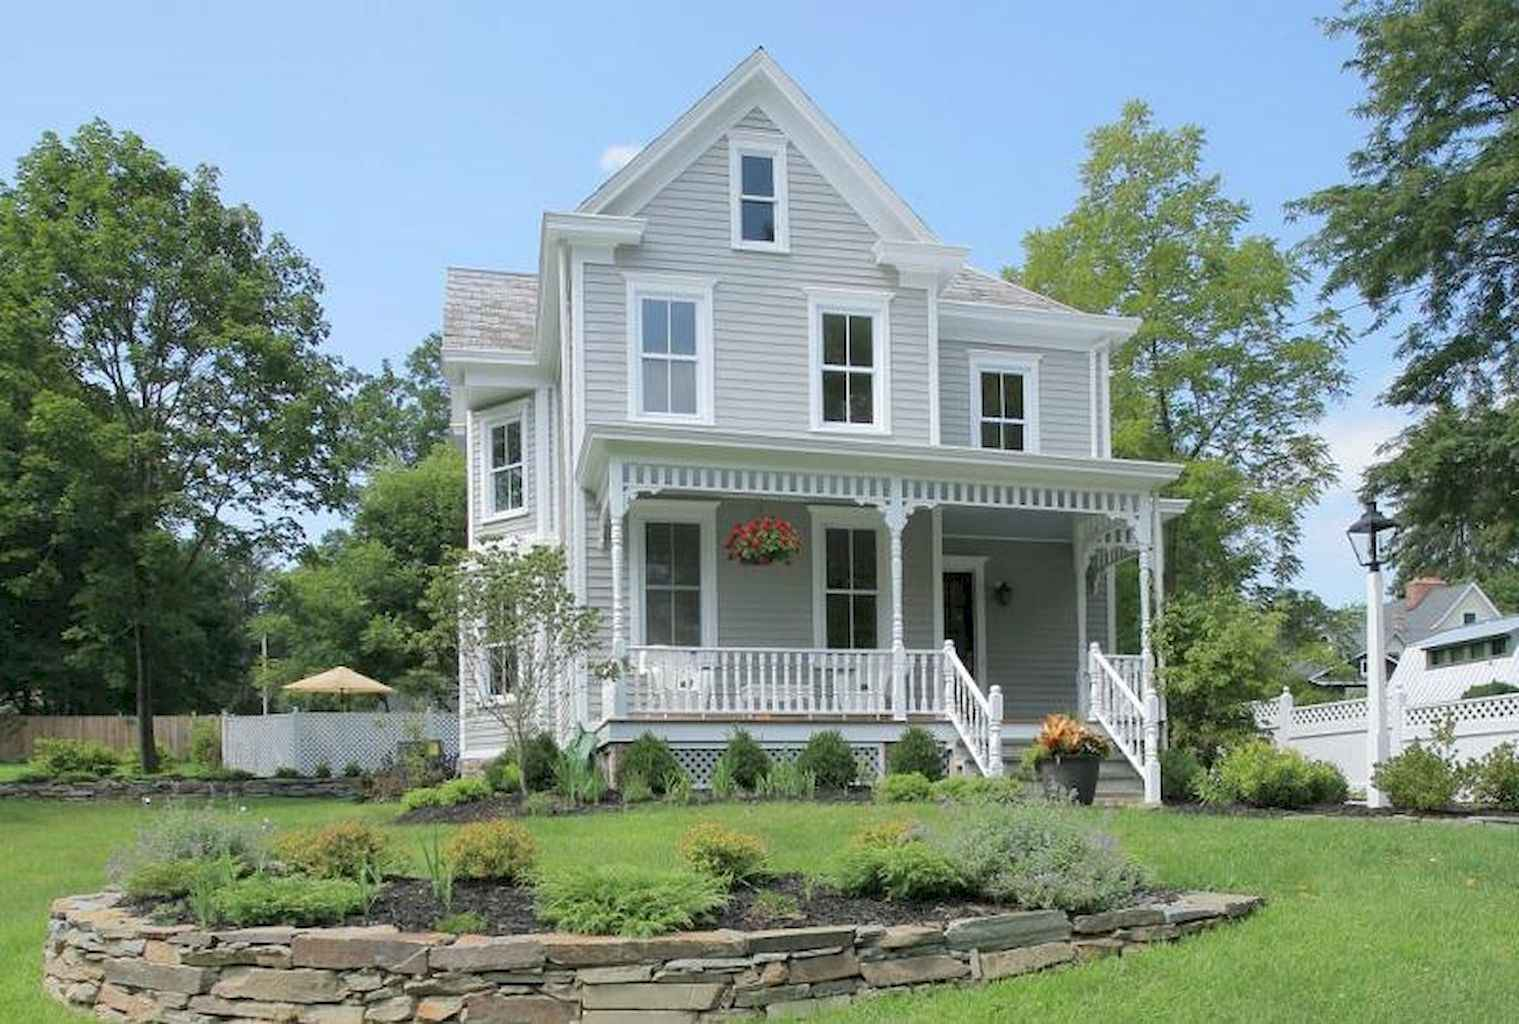 80 Awesome Victorian Farmhouse Plans Design Ideas (72)